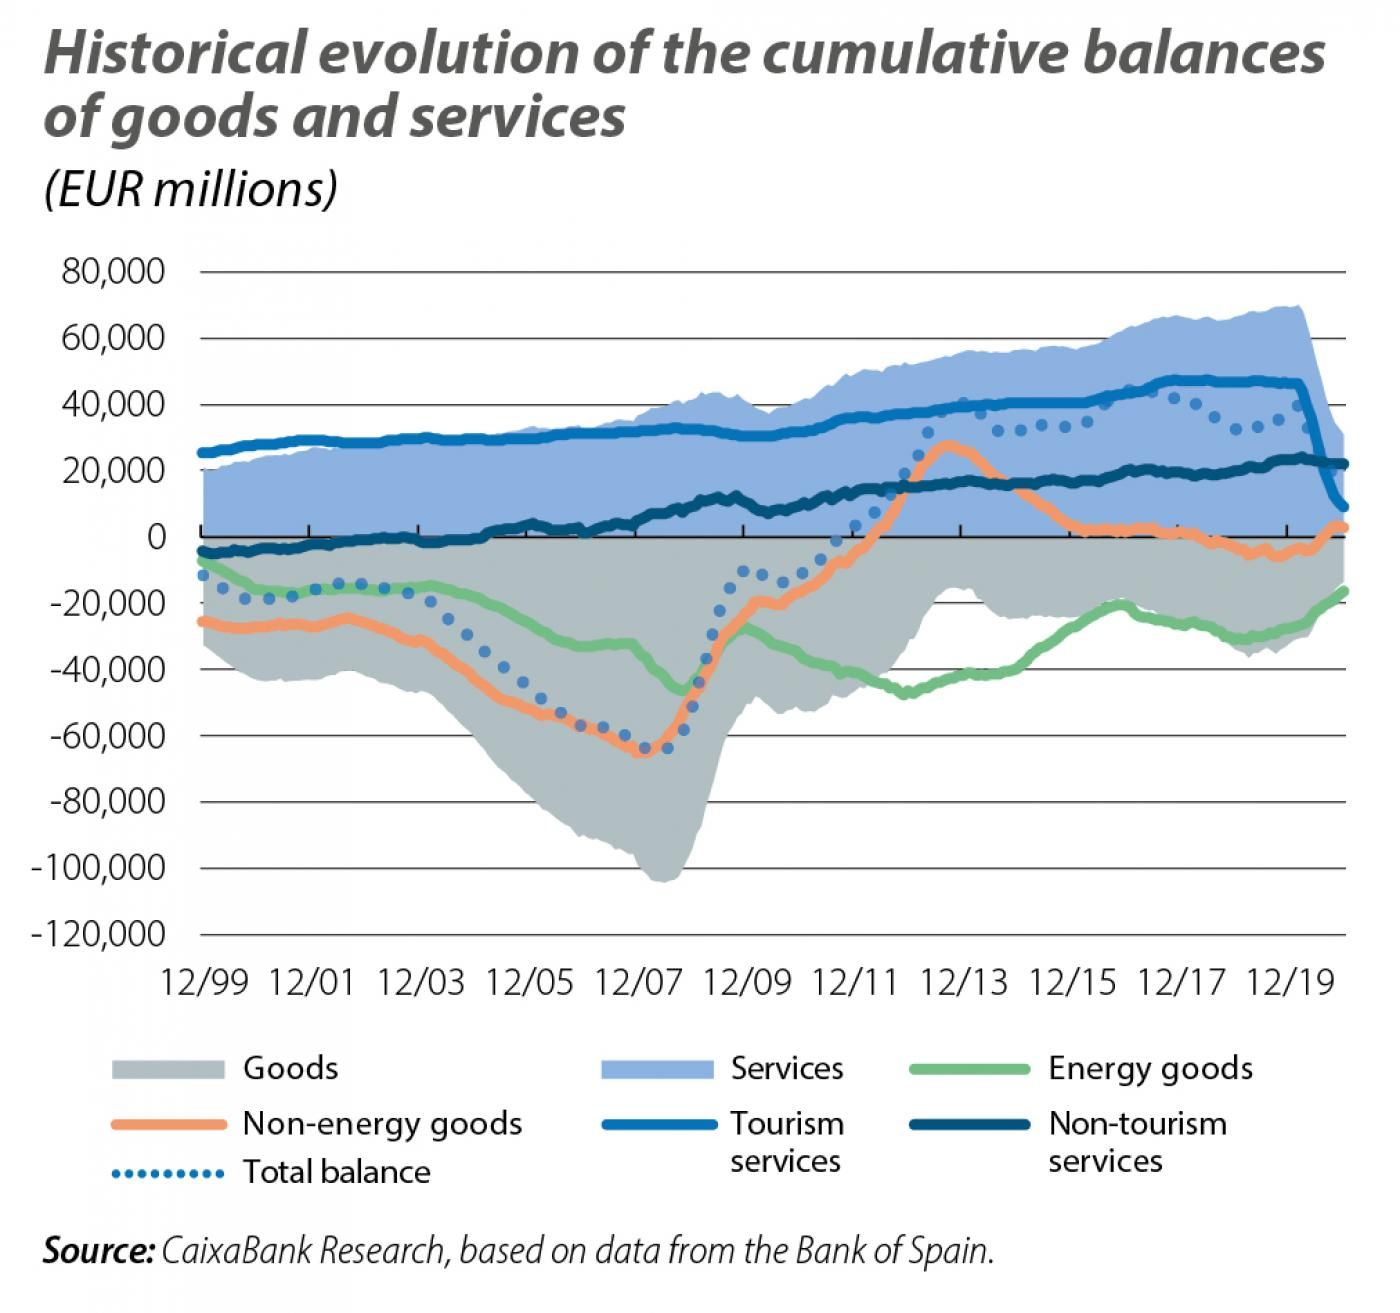 Historical evolution of the cumulative balances of goods and services